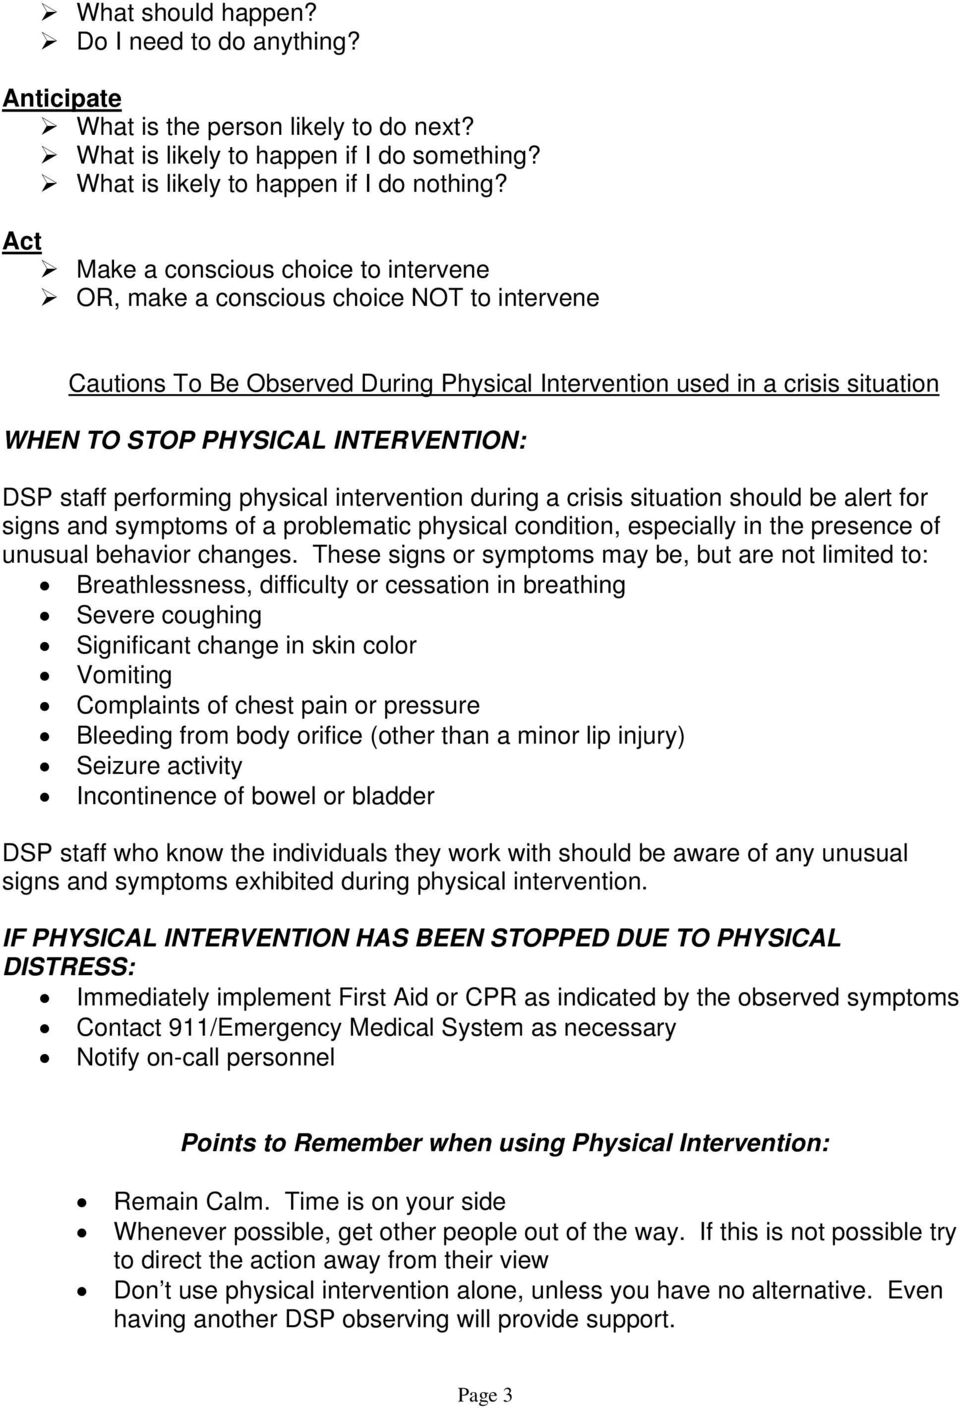 INTERVENTION: DSP Staff Performing Physical Intervention During A Crisis  Situation Should Be Alert For Signs